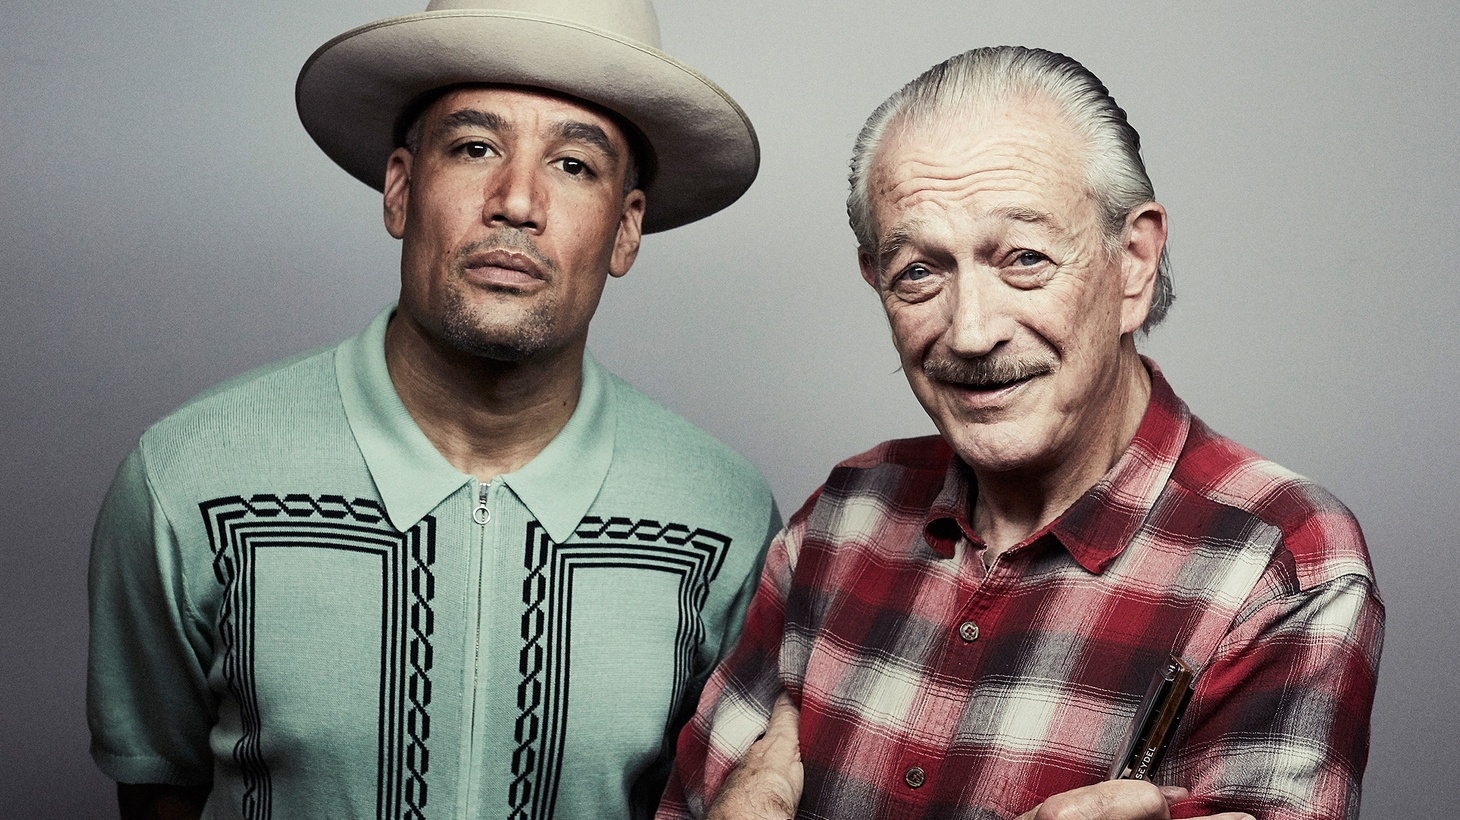 """Multiplatinum selling artists Ben Harper & Charlie Musselwhite picked up the """"Best Blues Album"""" Grammy-Award for their 2013 debut. A new recording has just landed that recounts their personal stories and adds to the sonic blues lexicon."""